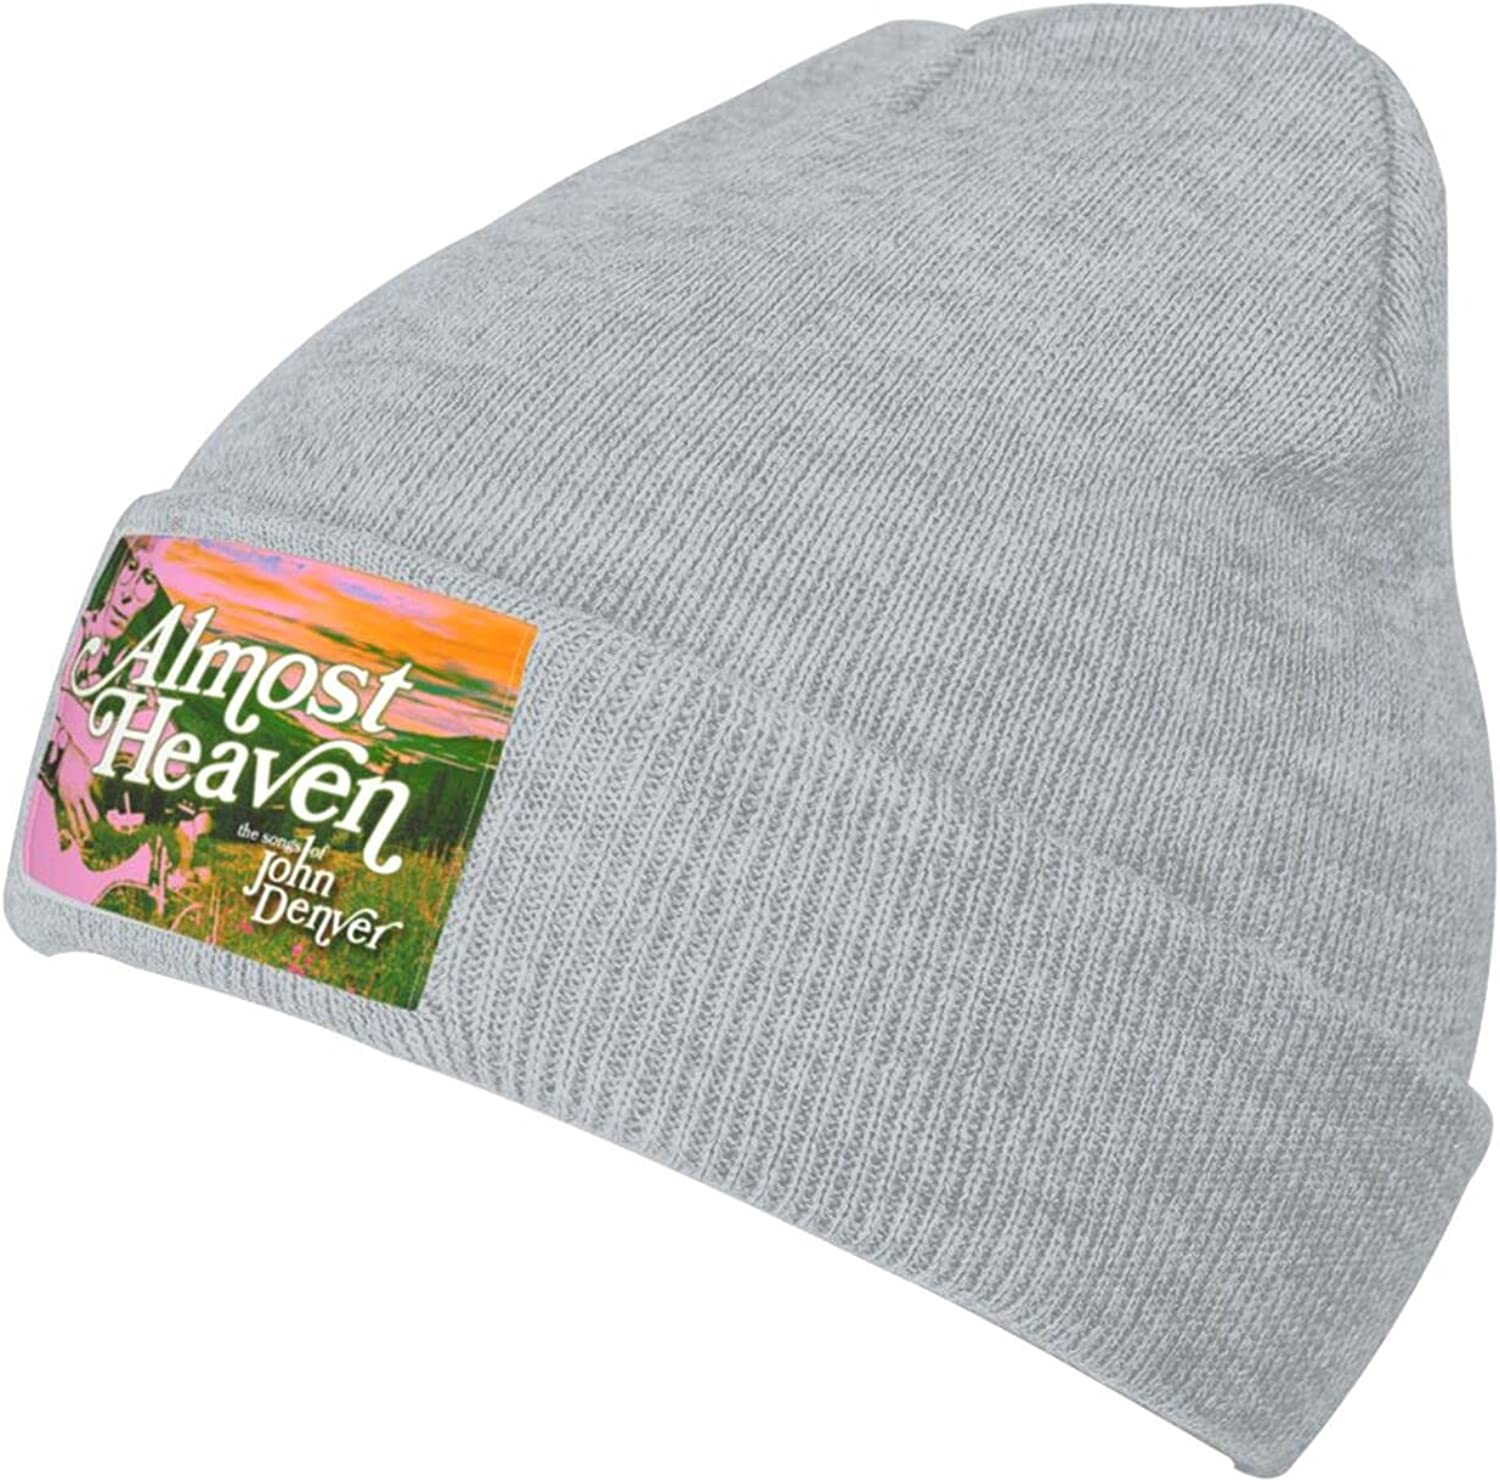 Ruporch Special price John-Denver Knit Hat Beanie Max 54% OFF fo Cap Unisex Hats Adult